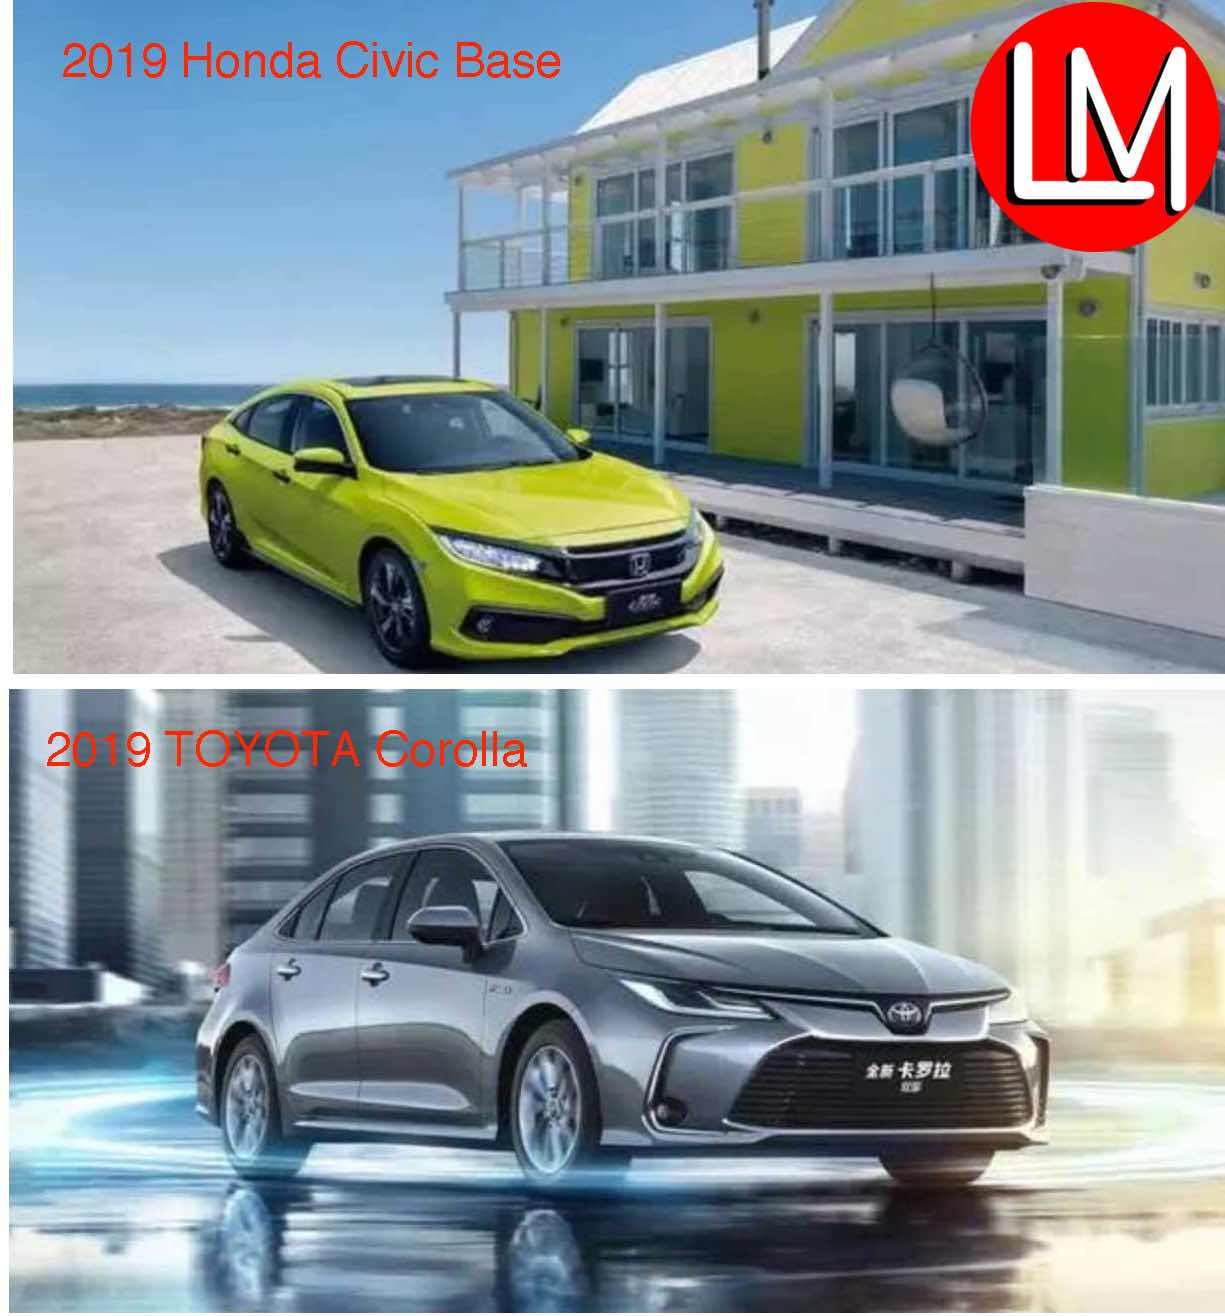 """Toyota Corolla vs Honda Civic 2019 Features: 2 family Cars """"Masterpieces""""- Which is more Desirable?"""